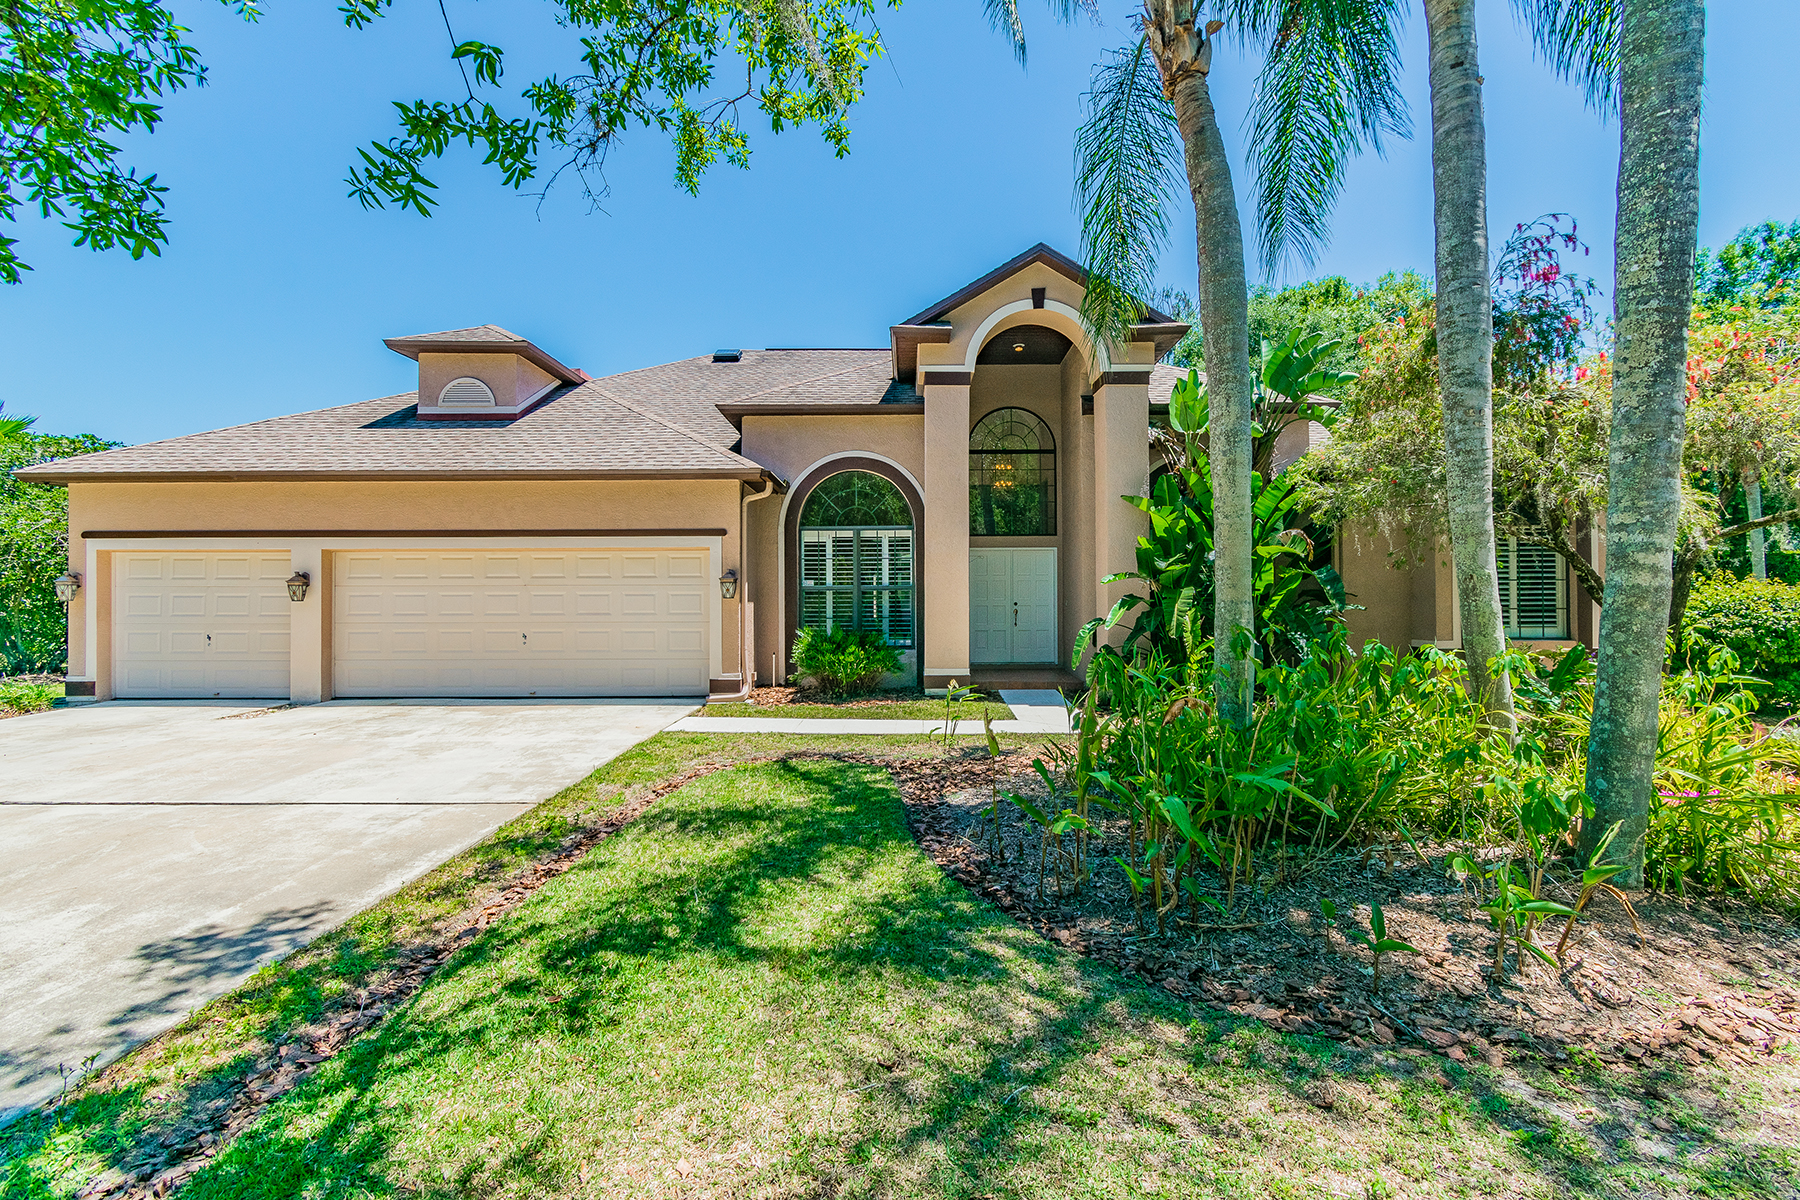 Single Family Homes for Active at VALRICO 4212 Thistle Terrace Pl Valrico, Florida 33596 United States